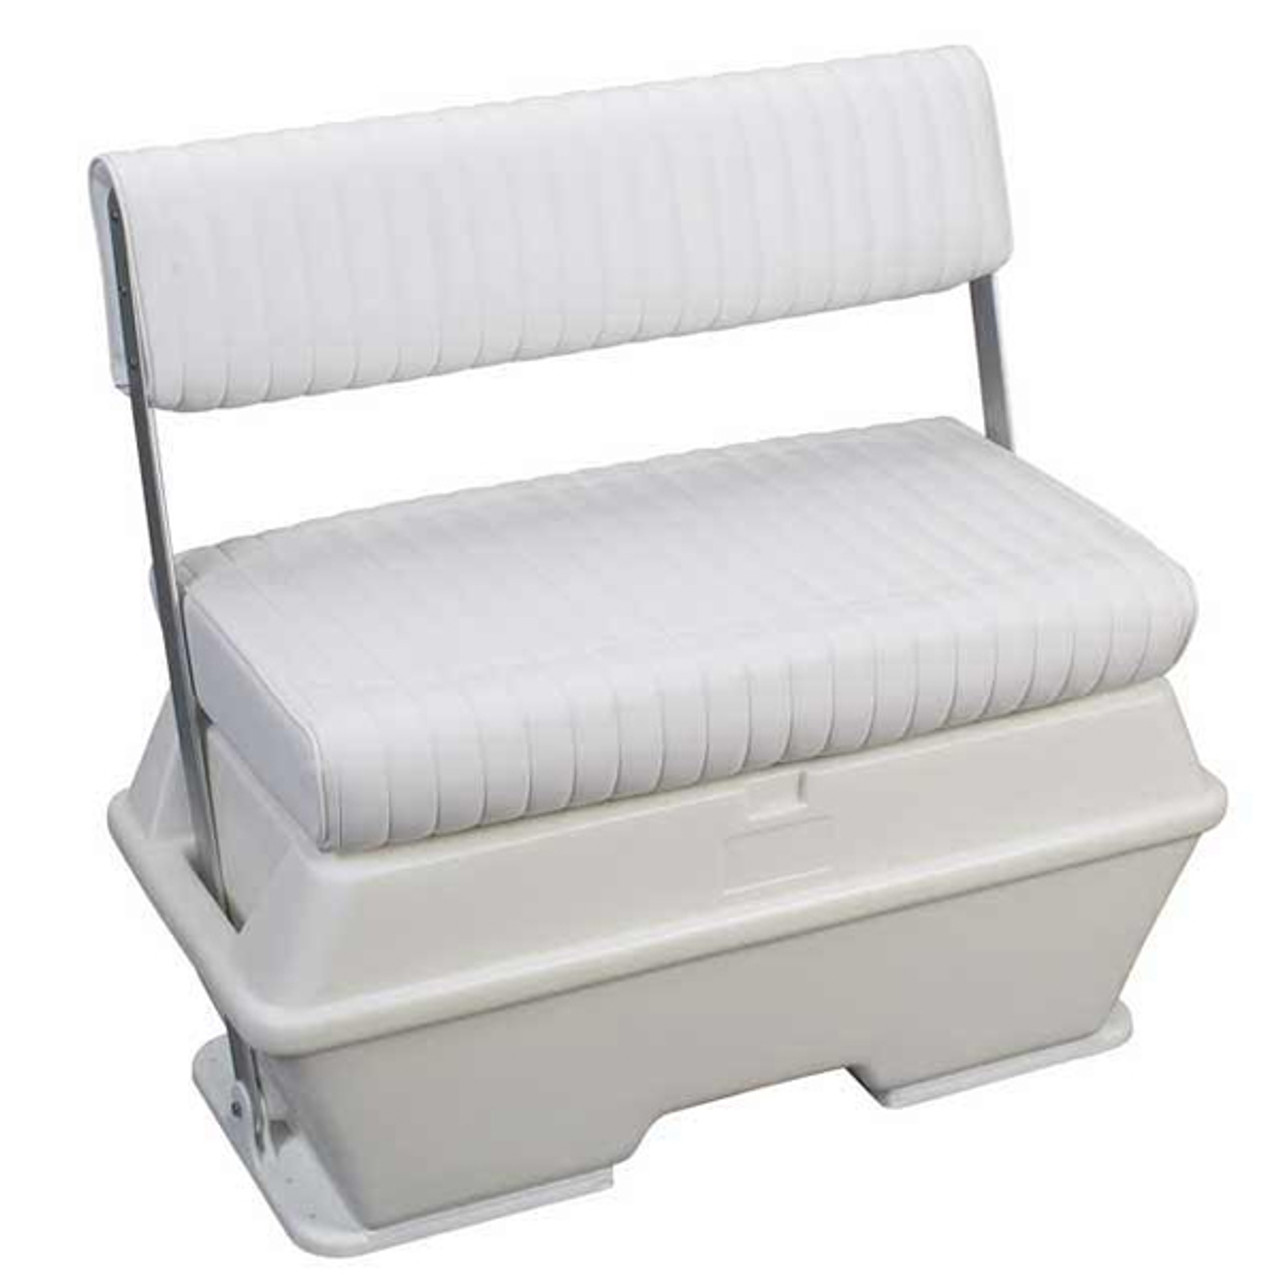 Admirable Moeller Deluxe 50 Qt Swingback Cooler Seat Caraccident5 Cool Chair Designs And Ideas Caraccident5Info